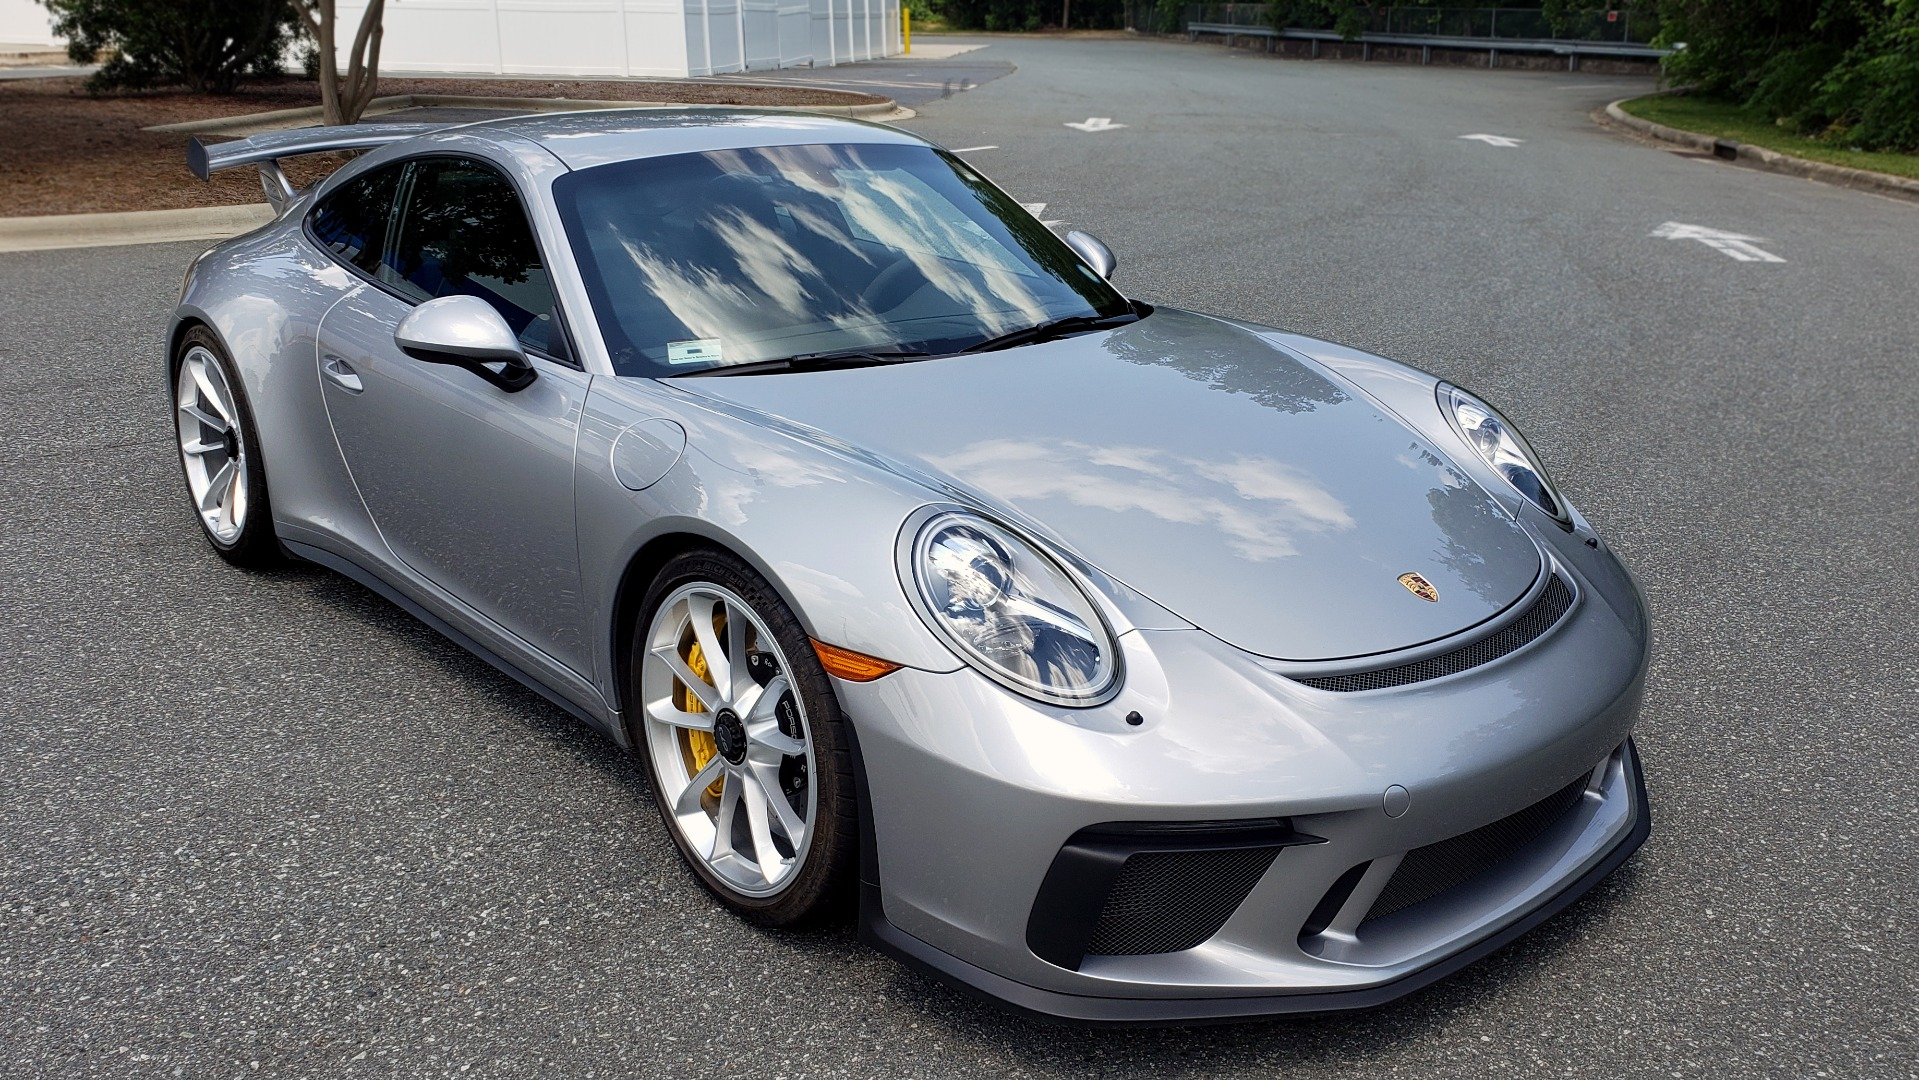 Used 2018 Porsche 911 GT3 4.0L 500HP / 6-SPD MNL / NAV / REARVIEW / PCCB for sale Sold at Formula Imports in Charlotte NC 28227 4